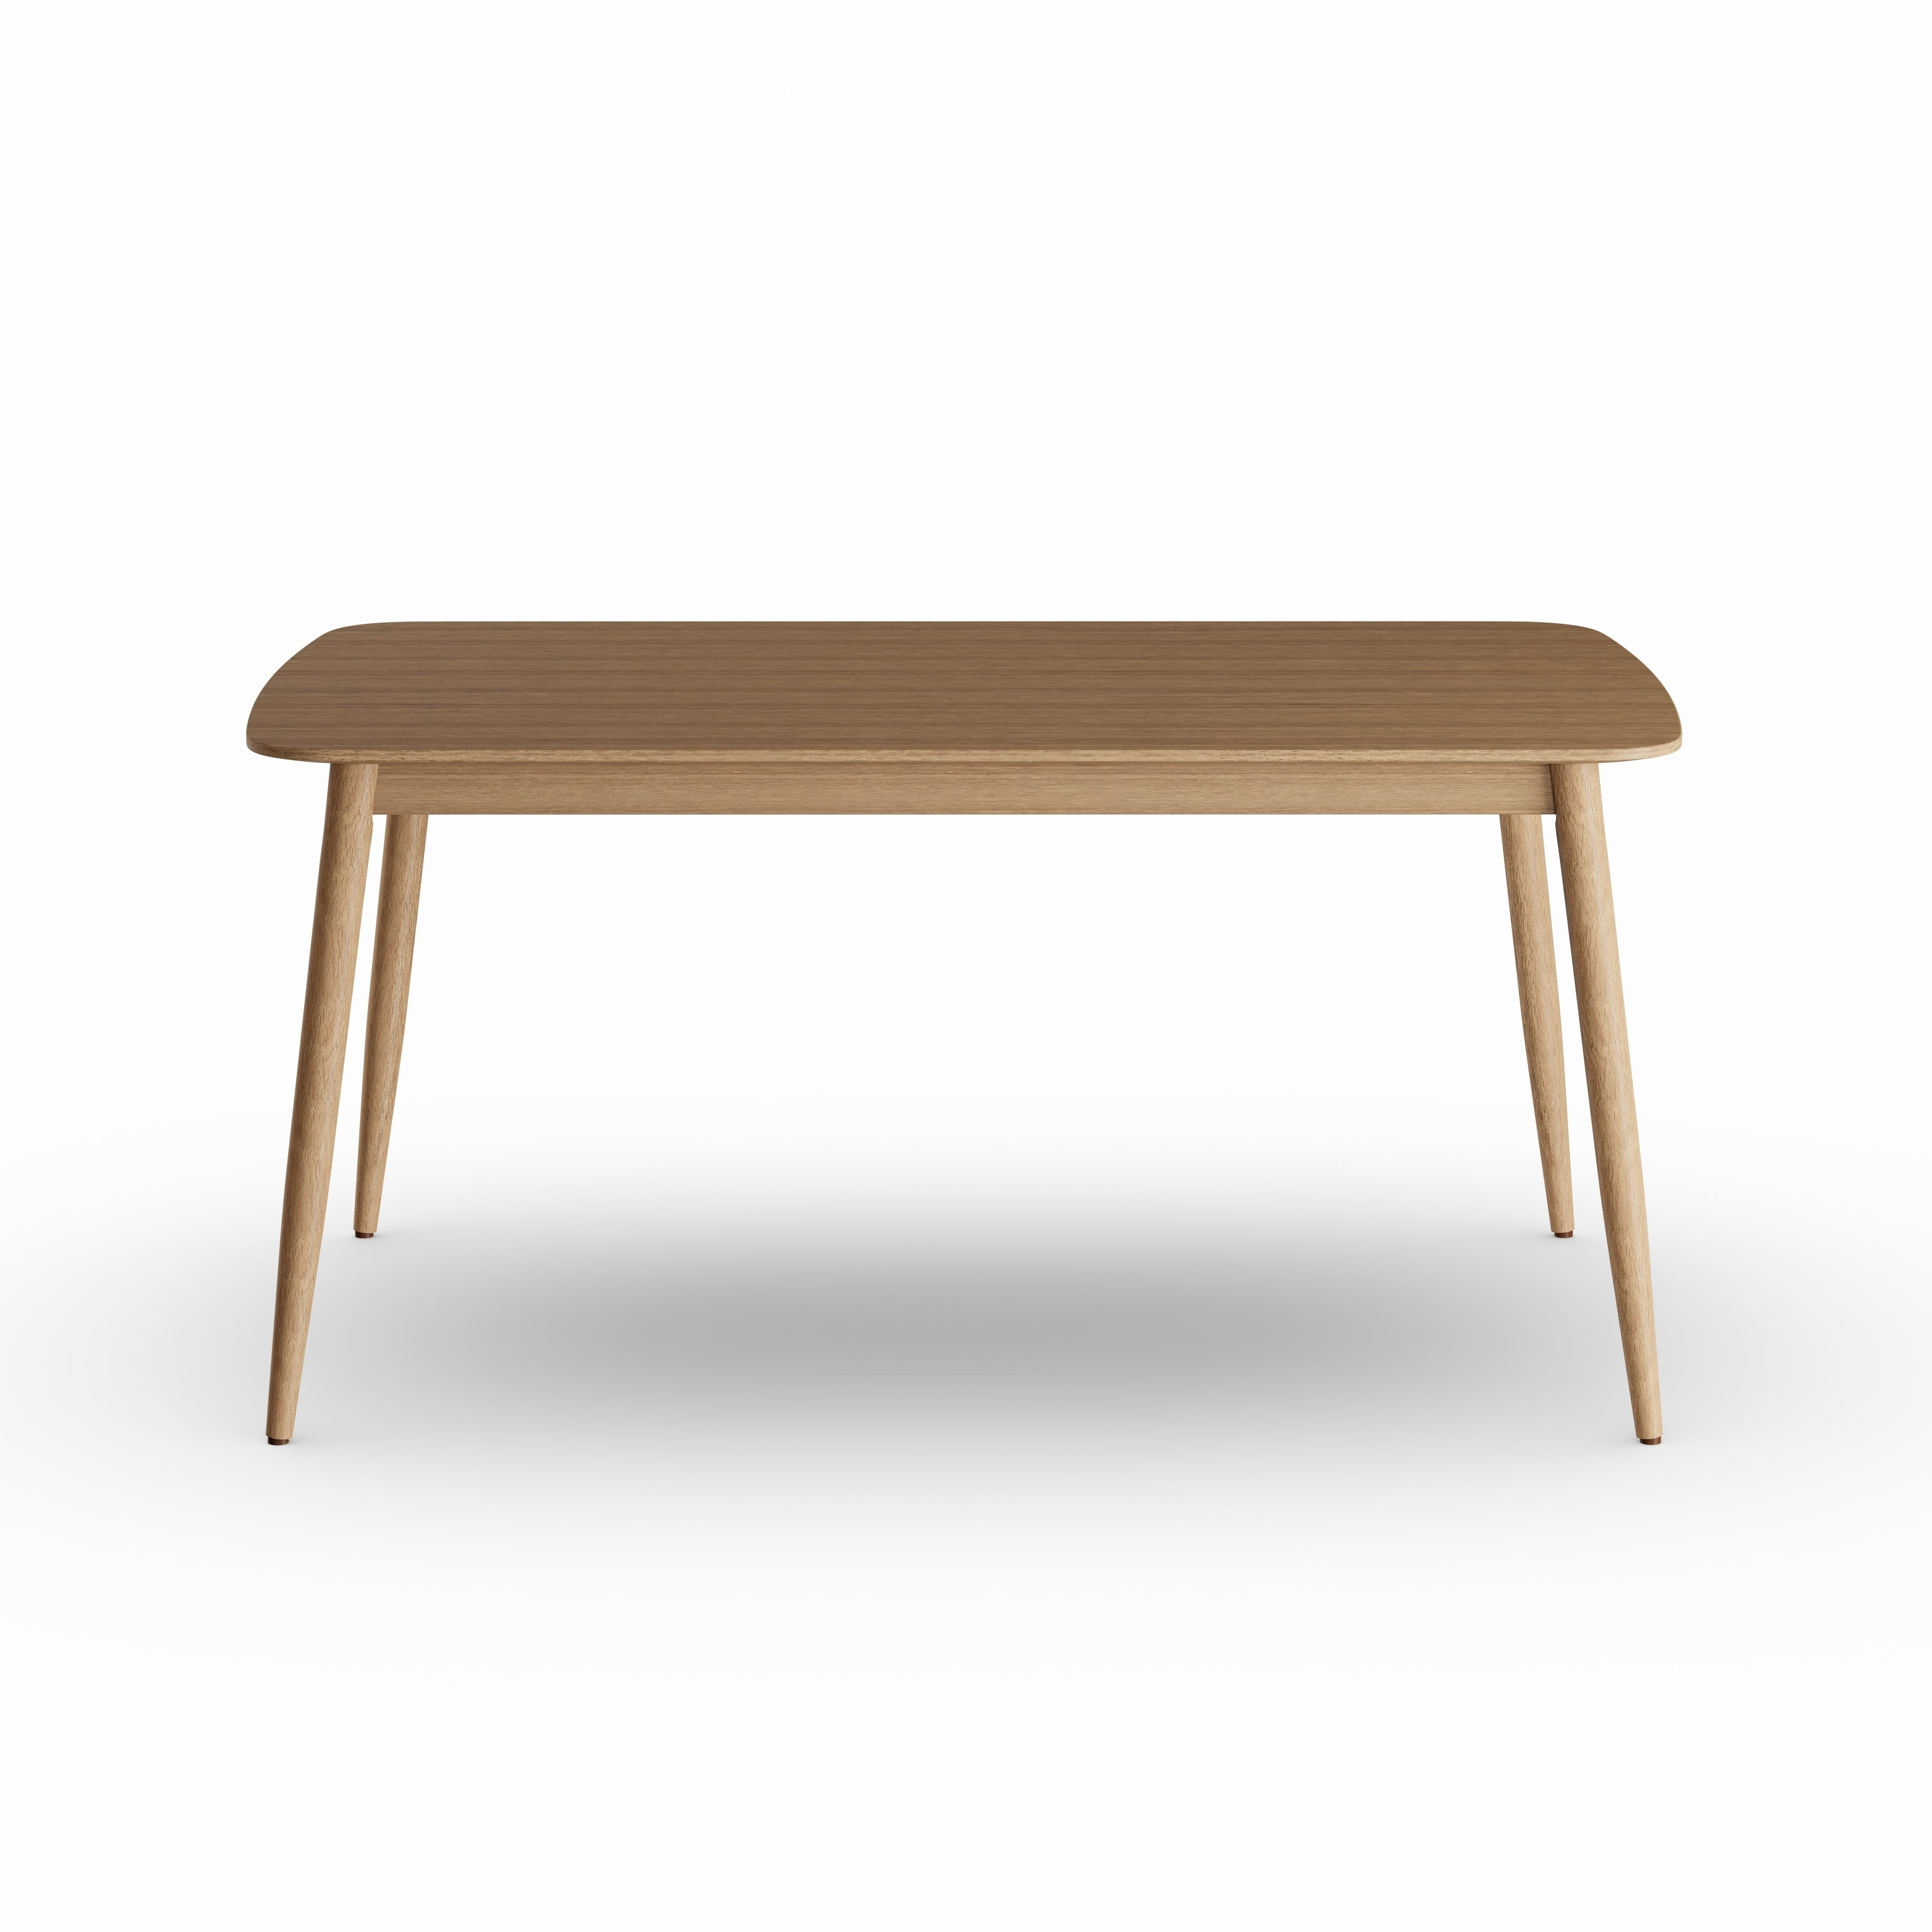 51df5ec2c4376 Shop Carson Carrington Haapajarvi Mid-century Modern French Oak Dining Table  - Free Shipping Today - Overstock - 21616296